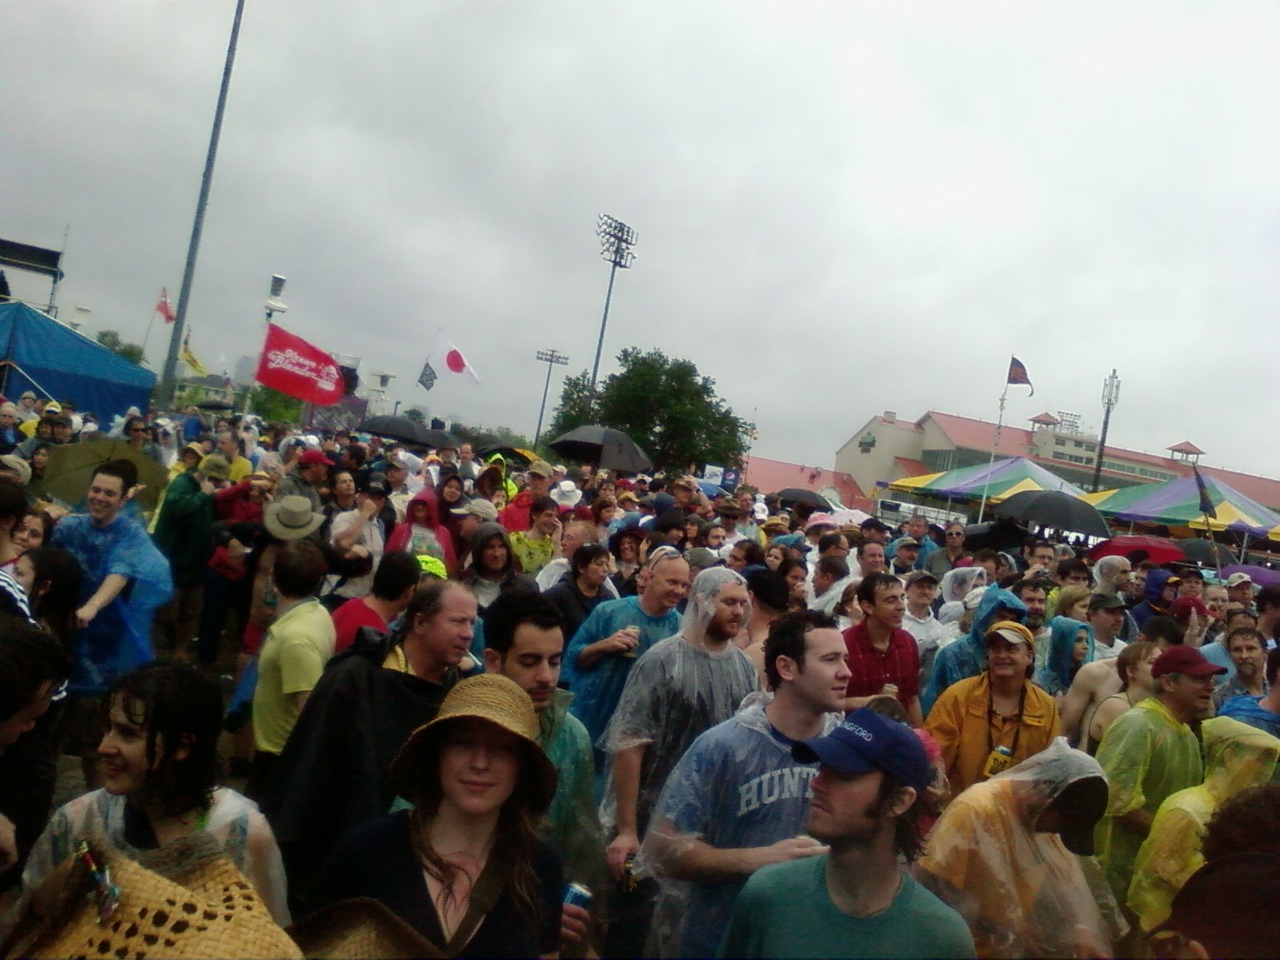 Stormy good times at the first day of Jazz Fest!